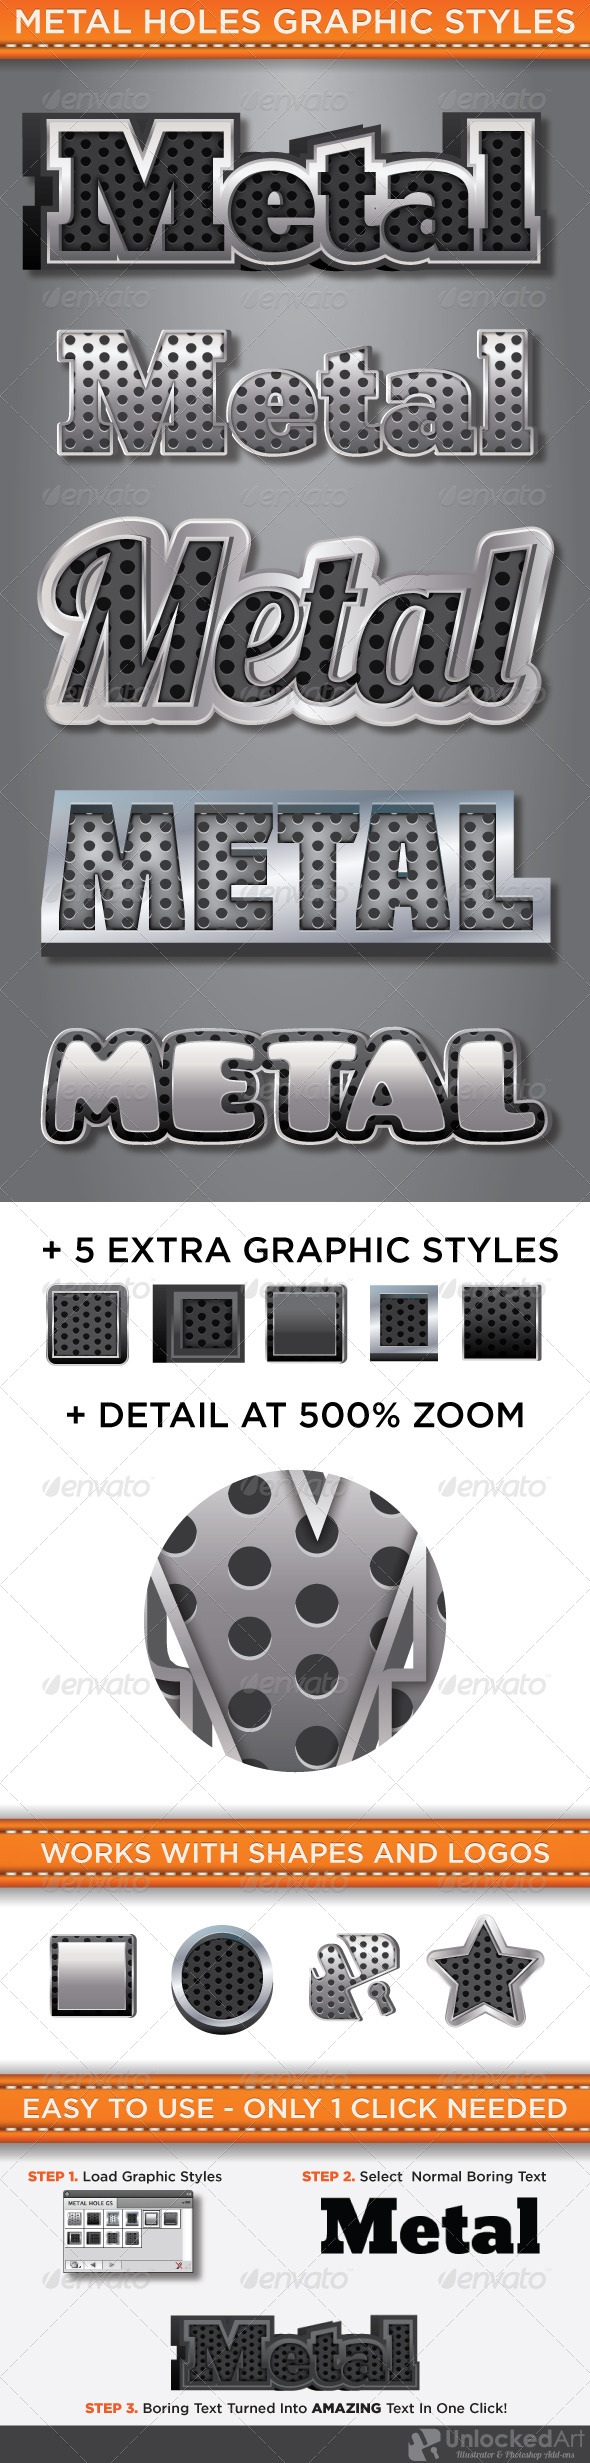 GraphicRiver Metal Holes Graphic Style 4596397